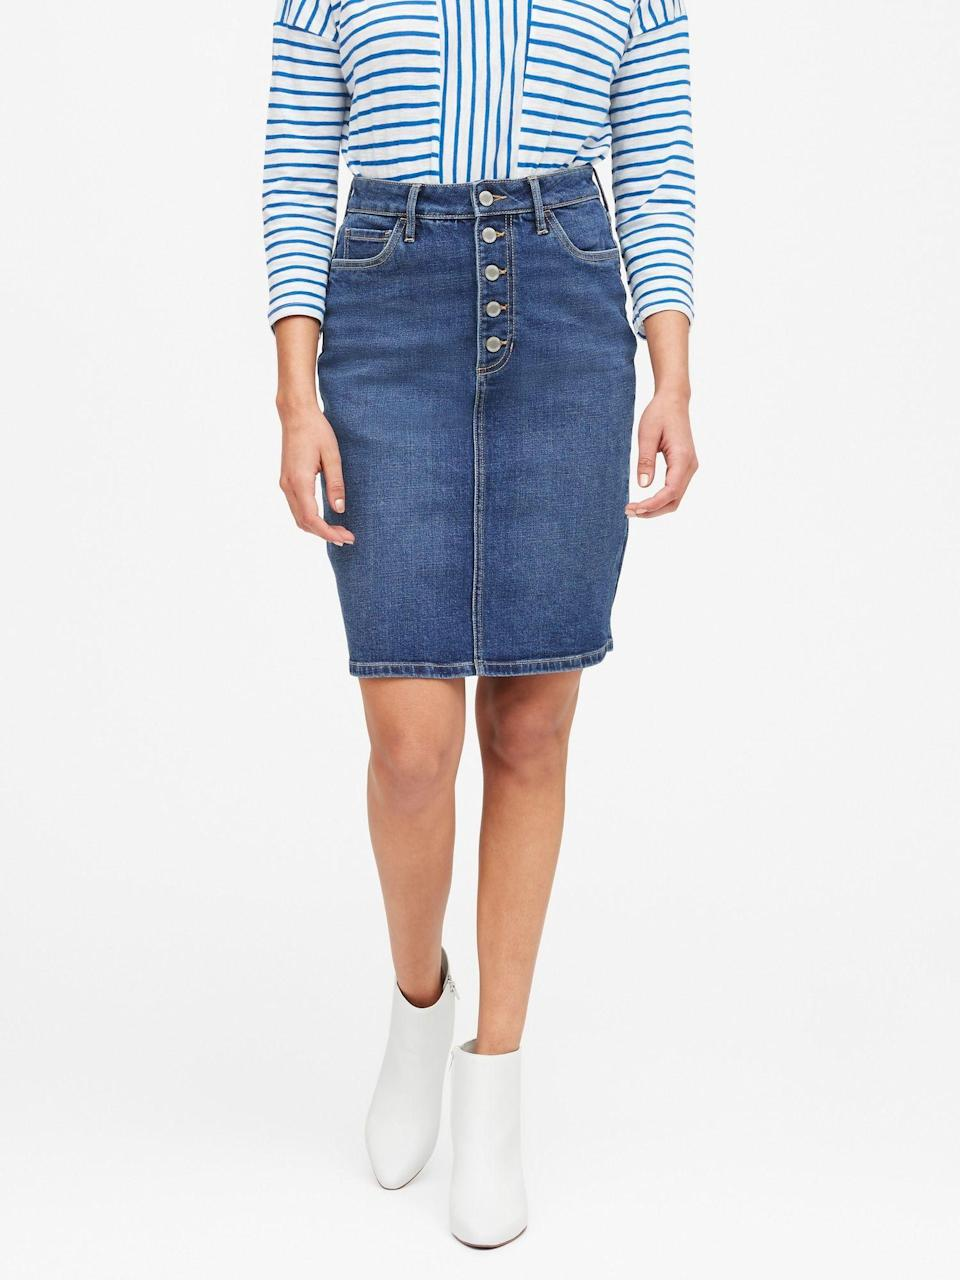 """<p><strong>Banana Republic</strong></p><p>bananarepublic.gap.com</p><p><strong>$79.50</strong></p><p><a href=""""https://go.redirectingat.com?id=74968X1596630&url=https%3A%2F%2Fbananarepublic.gap.com%2Fbrowse%2Fproduct.do%3Fpid%3D547979002%26pcid%3D999%26vid%3D1%26searchText%3Ddenim%2Bskirt%23pdp-page-content&sref=https%3A%2F%2Fwww.marieclaire.com%2Ffashion%2Fstreet-style%2Fg32046163%2Fbest-denim-skirts%2F"""" rel=""""nofollow noopener"""" target=""""_blank"""" data-ylk=""""slk:shop It"""" class=""""link rapid-noclick-resp"""">shop It </a></p><p>I think we've made our point that a denim skirt IS a wardrobe essential. For maximum comfort, look for a style with a bit of stretch and when you try it on, don't forget to try sitting down to make sure it gives the right amount of coverage. </p><p><em>For more stories like this, including celebrity news, beauty and fashion advice, savvy political commentary, and fascinating features, sign up for the </em>Marie Claire<em> newsletter.</em><em><br></em></p><p><a class=""""link rapid-noclick-resp"""" href=""""https://link.marieclaire.com/join/3oa/mar-newsletter?authId=F0CC0C27-80DA-4734-ABDF-E4115B84A56B&maj=WNL&min=ARTICLES"""" rel=""""nofollow noopener"""" target=""""_blank"""" data-ylk=""""slk:subscribe here"""">subscribe here</a></p>"""